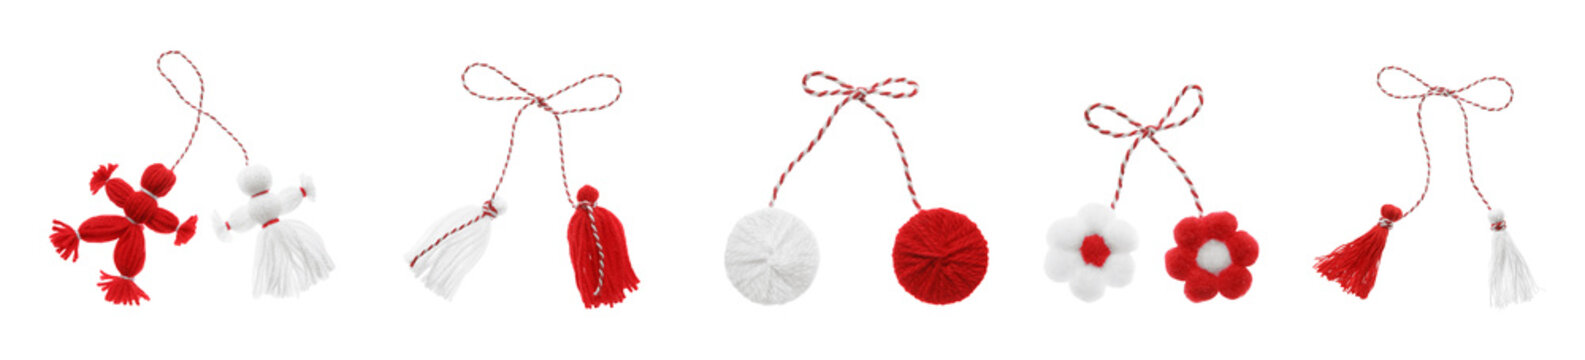 Set with traditional martenitsi in different shapes on white background, banner design. Symbol of first spring day (Martisor celebration)